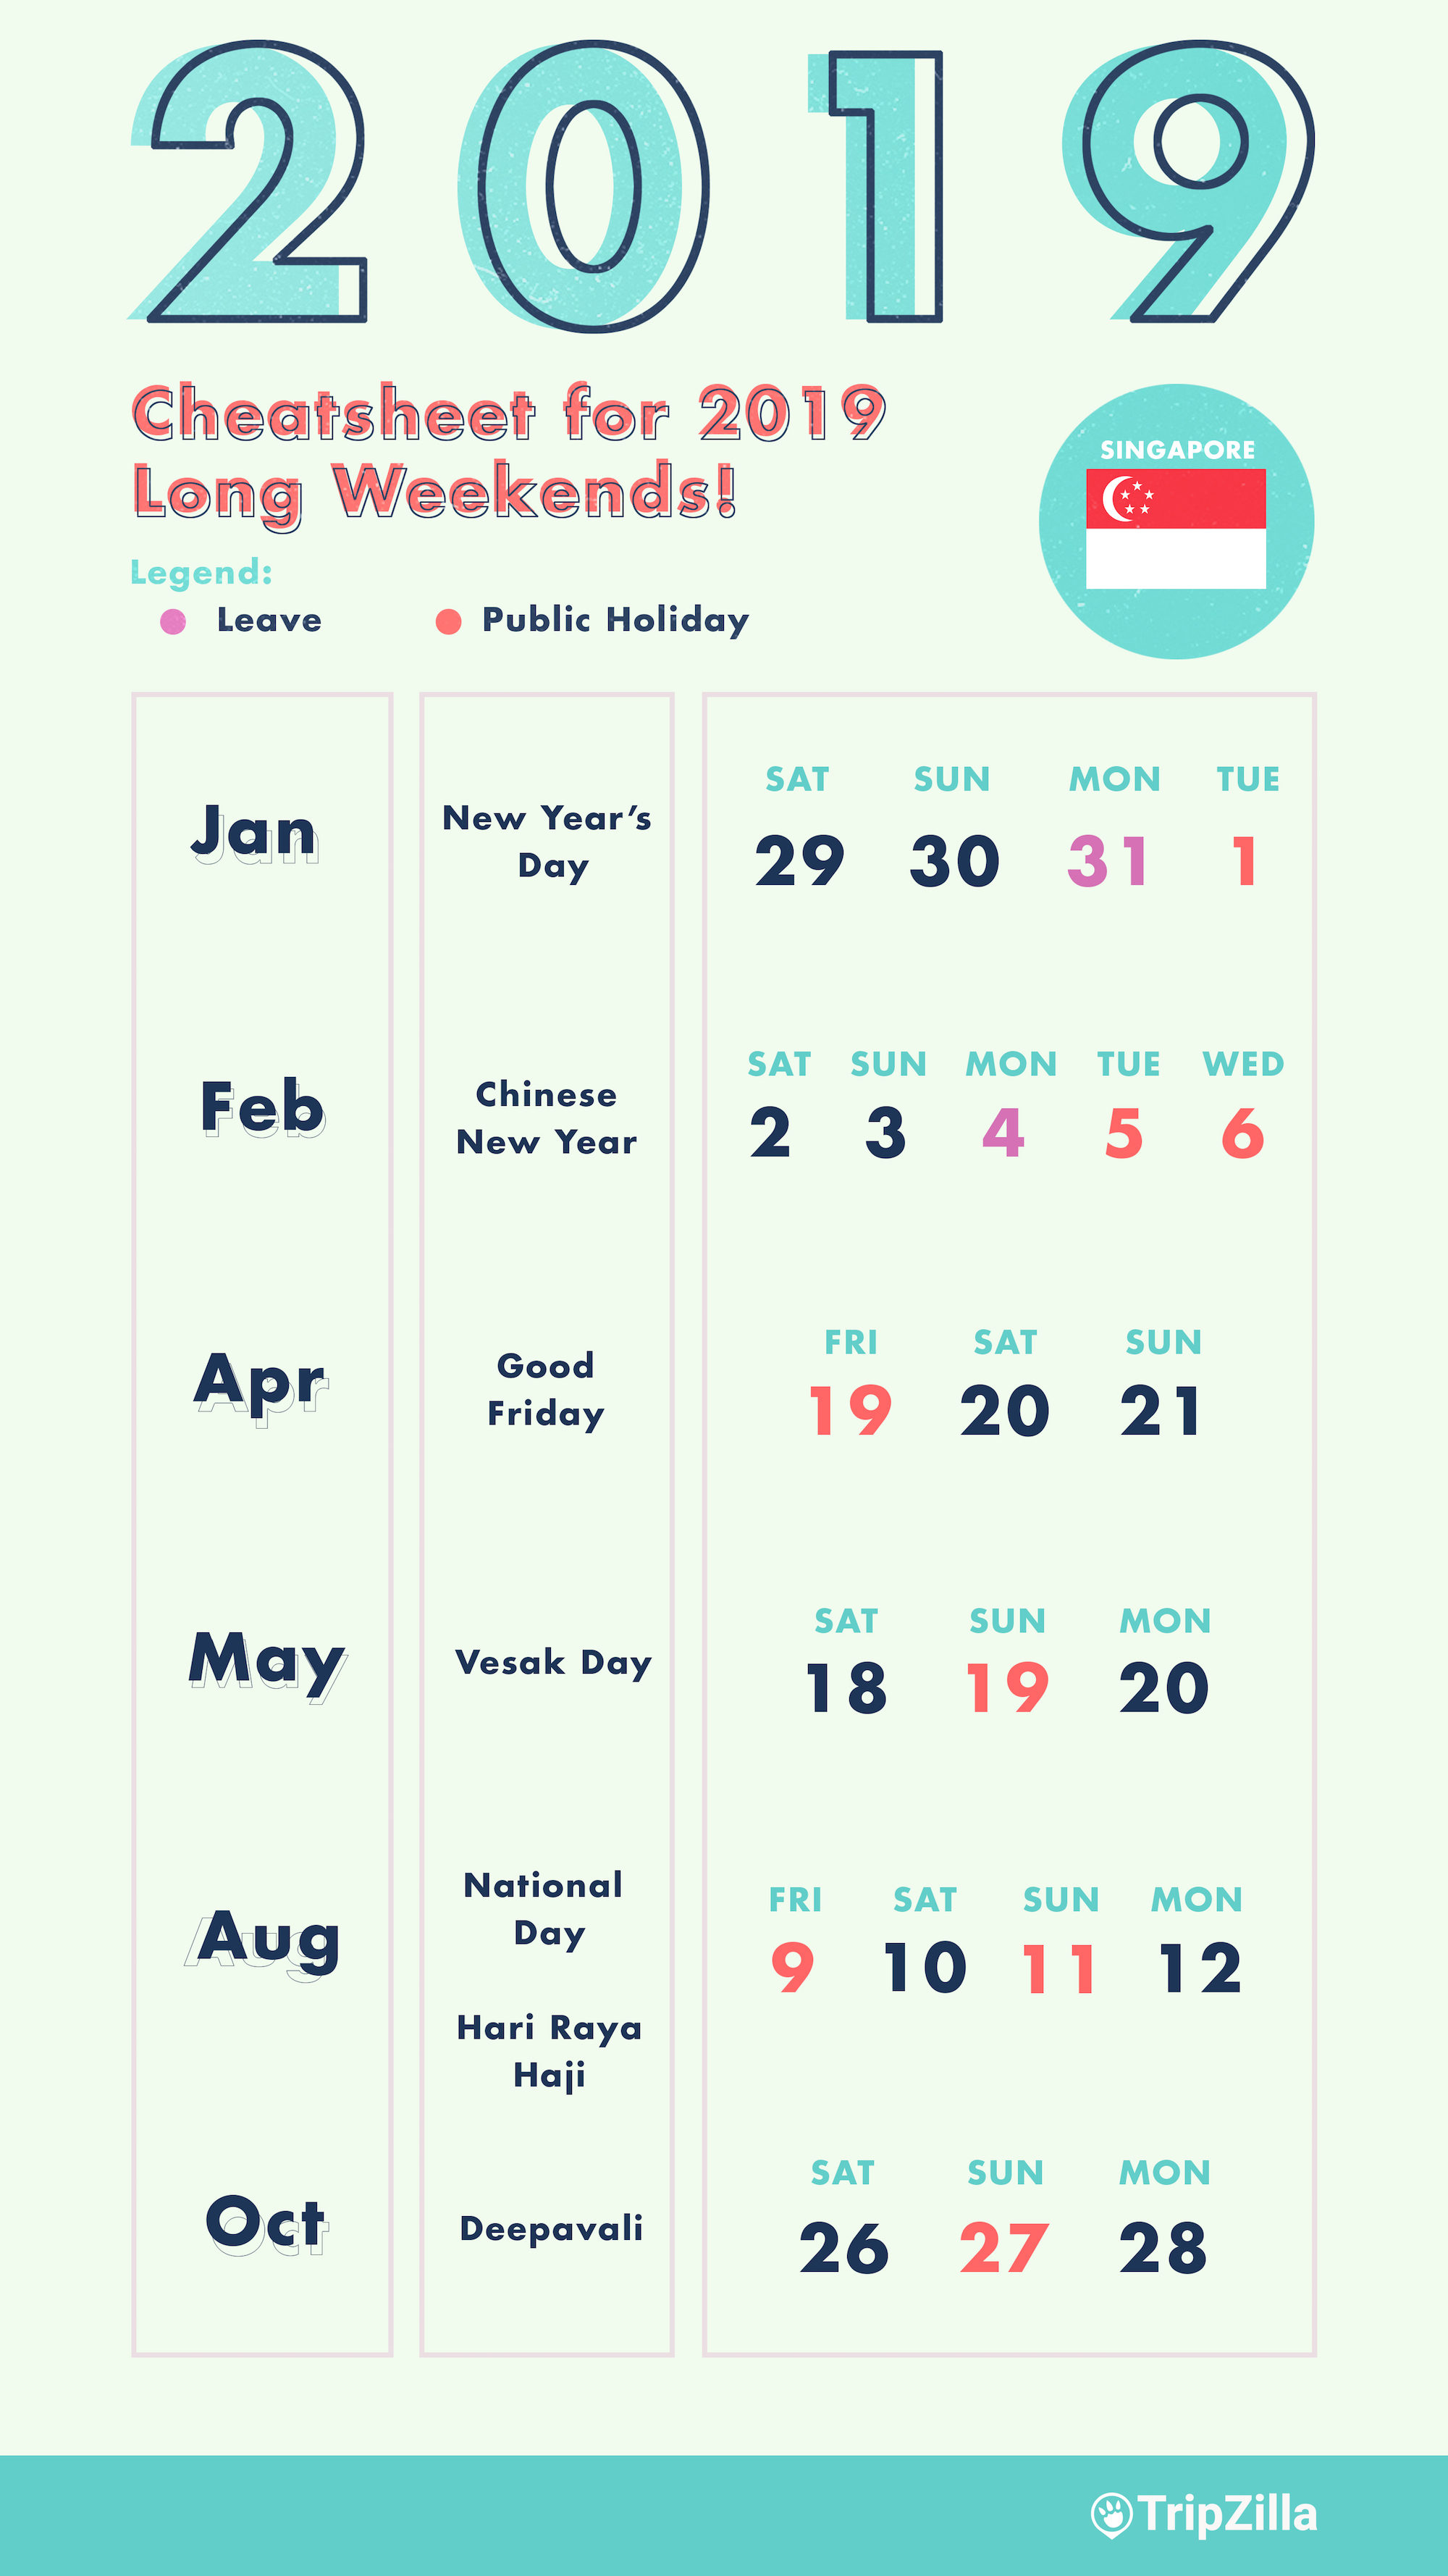 Chinese New Year 2019 Calendar Taiwan With 6 Long Weekends In Singapore Bonus Cheatsheet